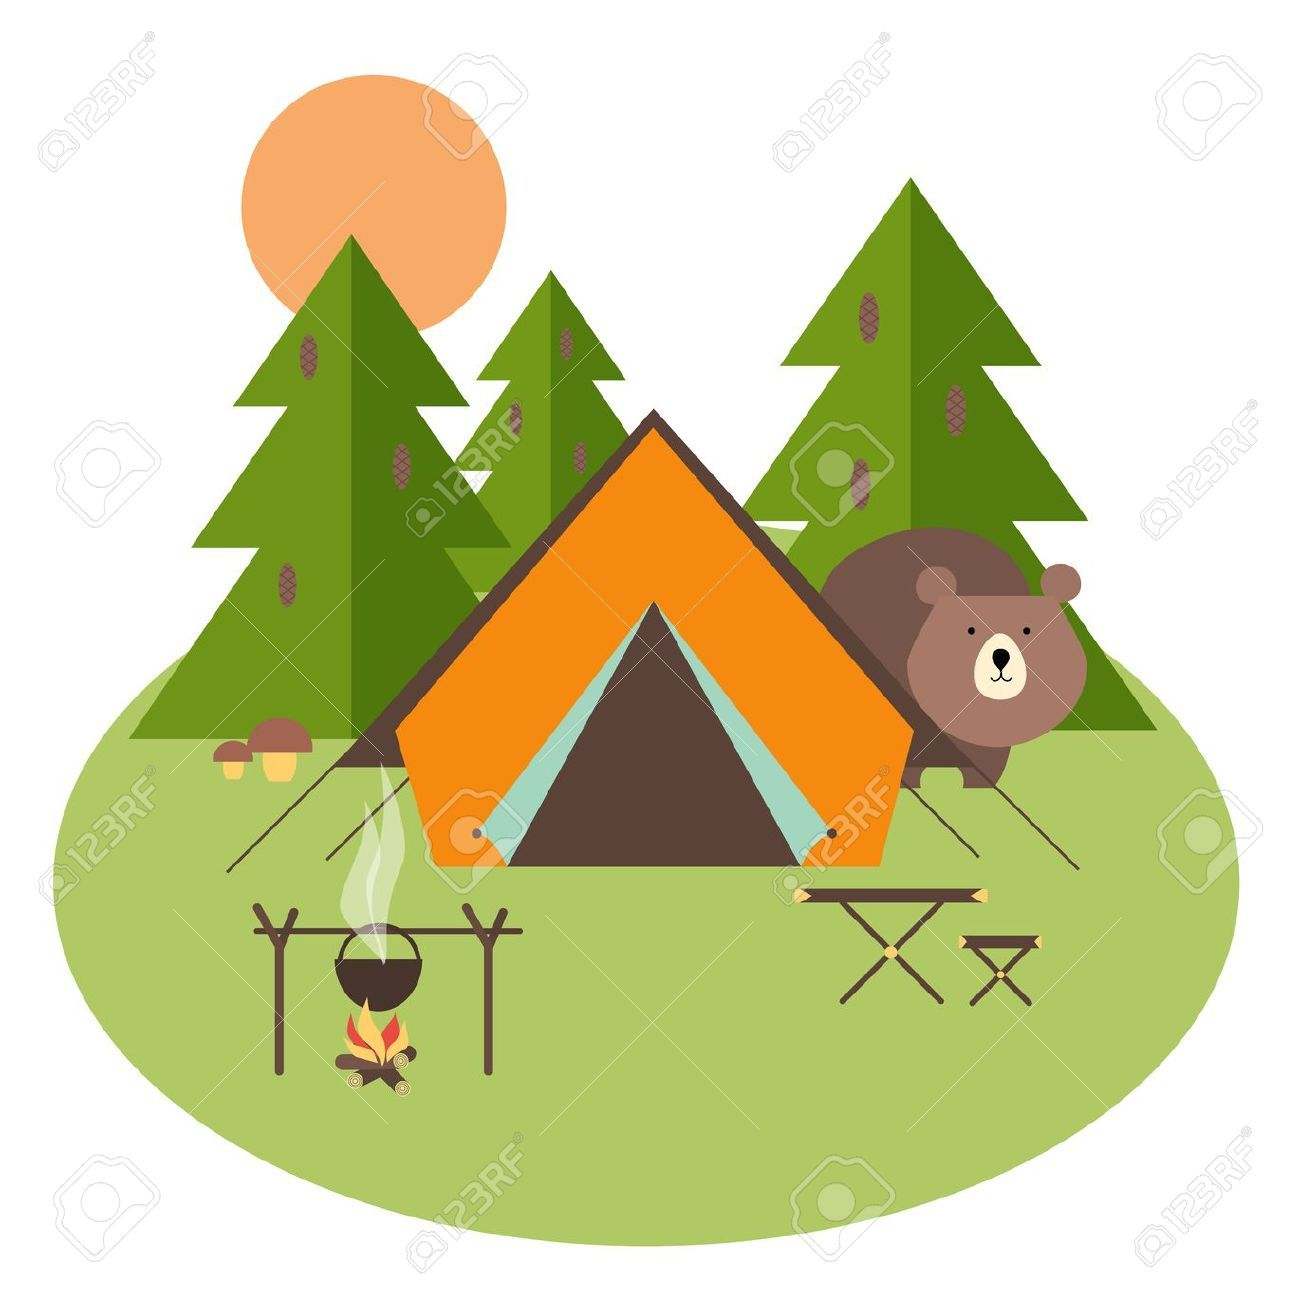 Camping Clipart Vector.